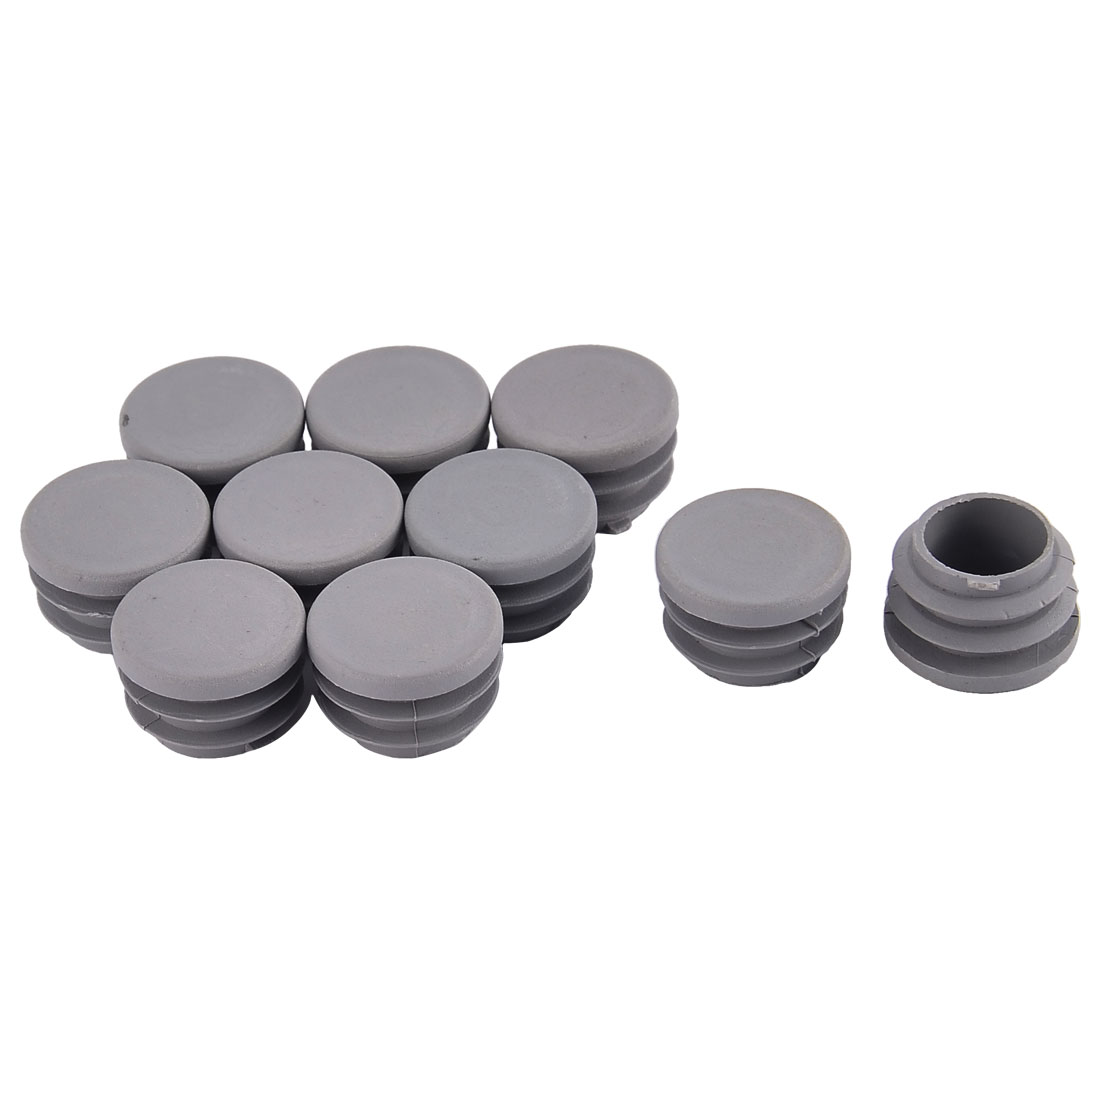 Furniture Table Chair Plastic Round Tube Pipe Insert Cap Cover Protector Gray 25mm Dia 10pcs